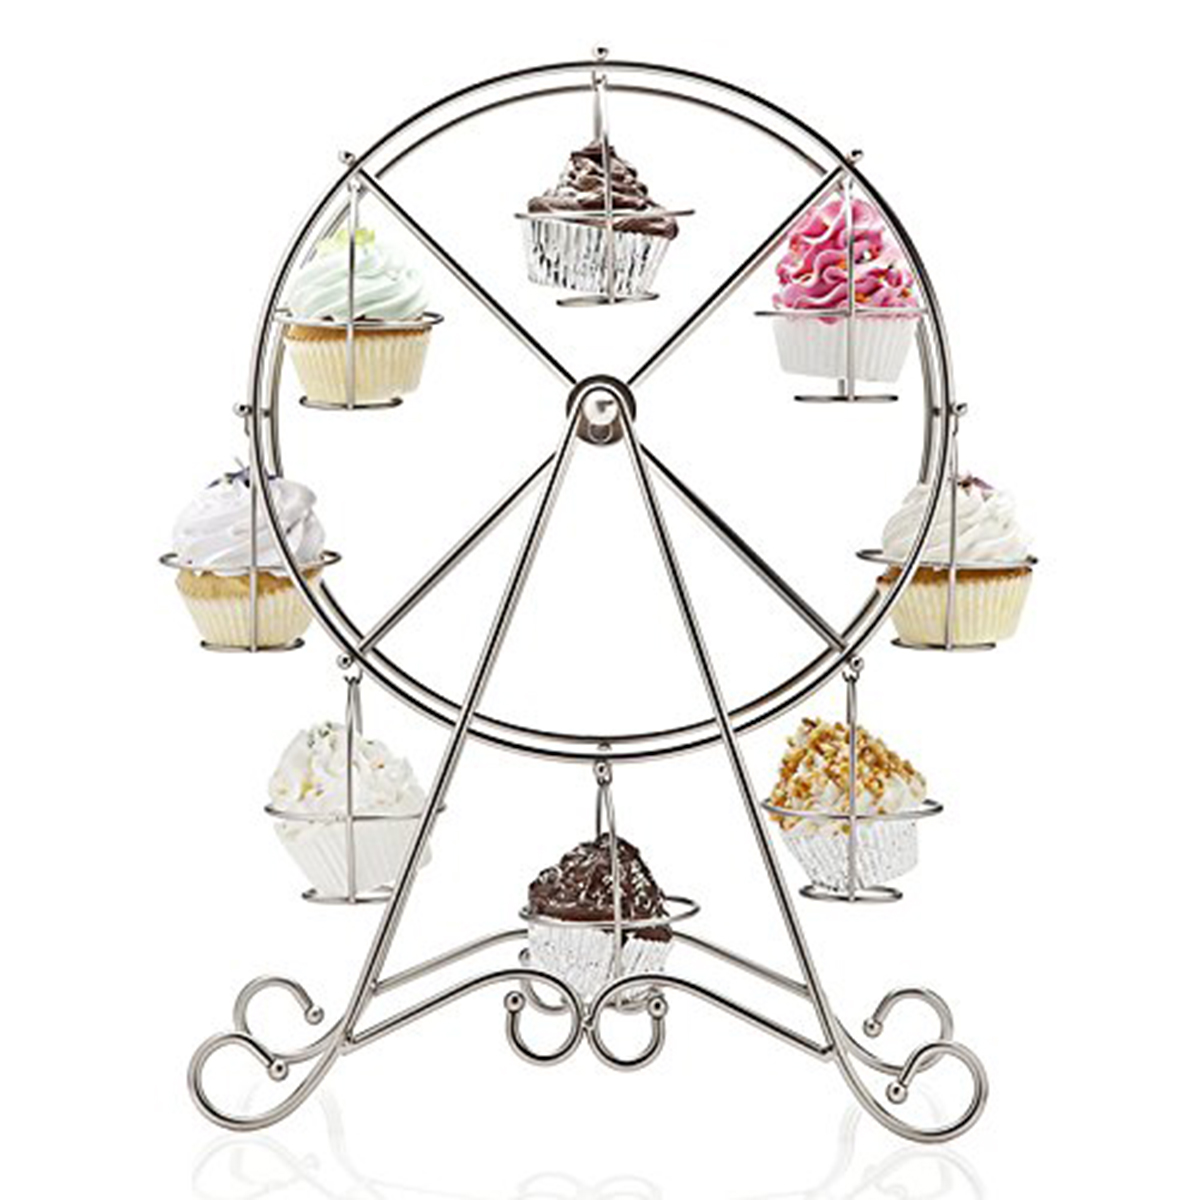 Stainless Steel 8-Cup Round Rotating Ferris Wheel Cupcake Stand(China (Mainland))